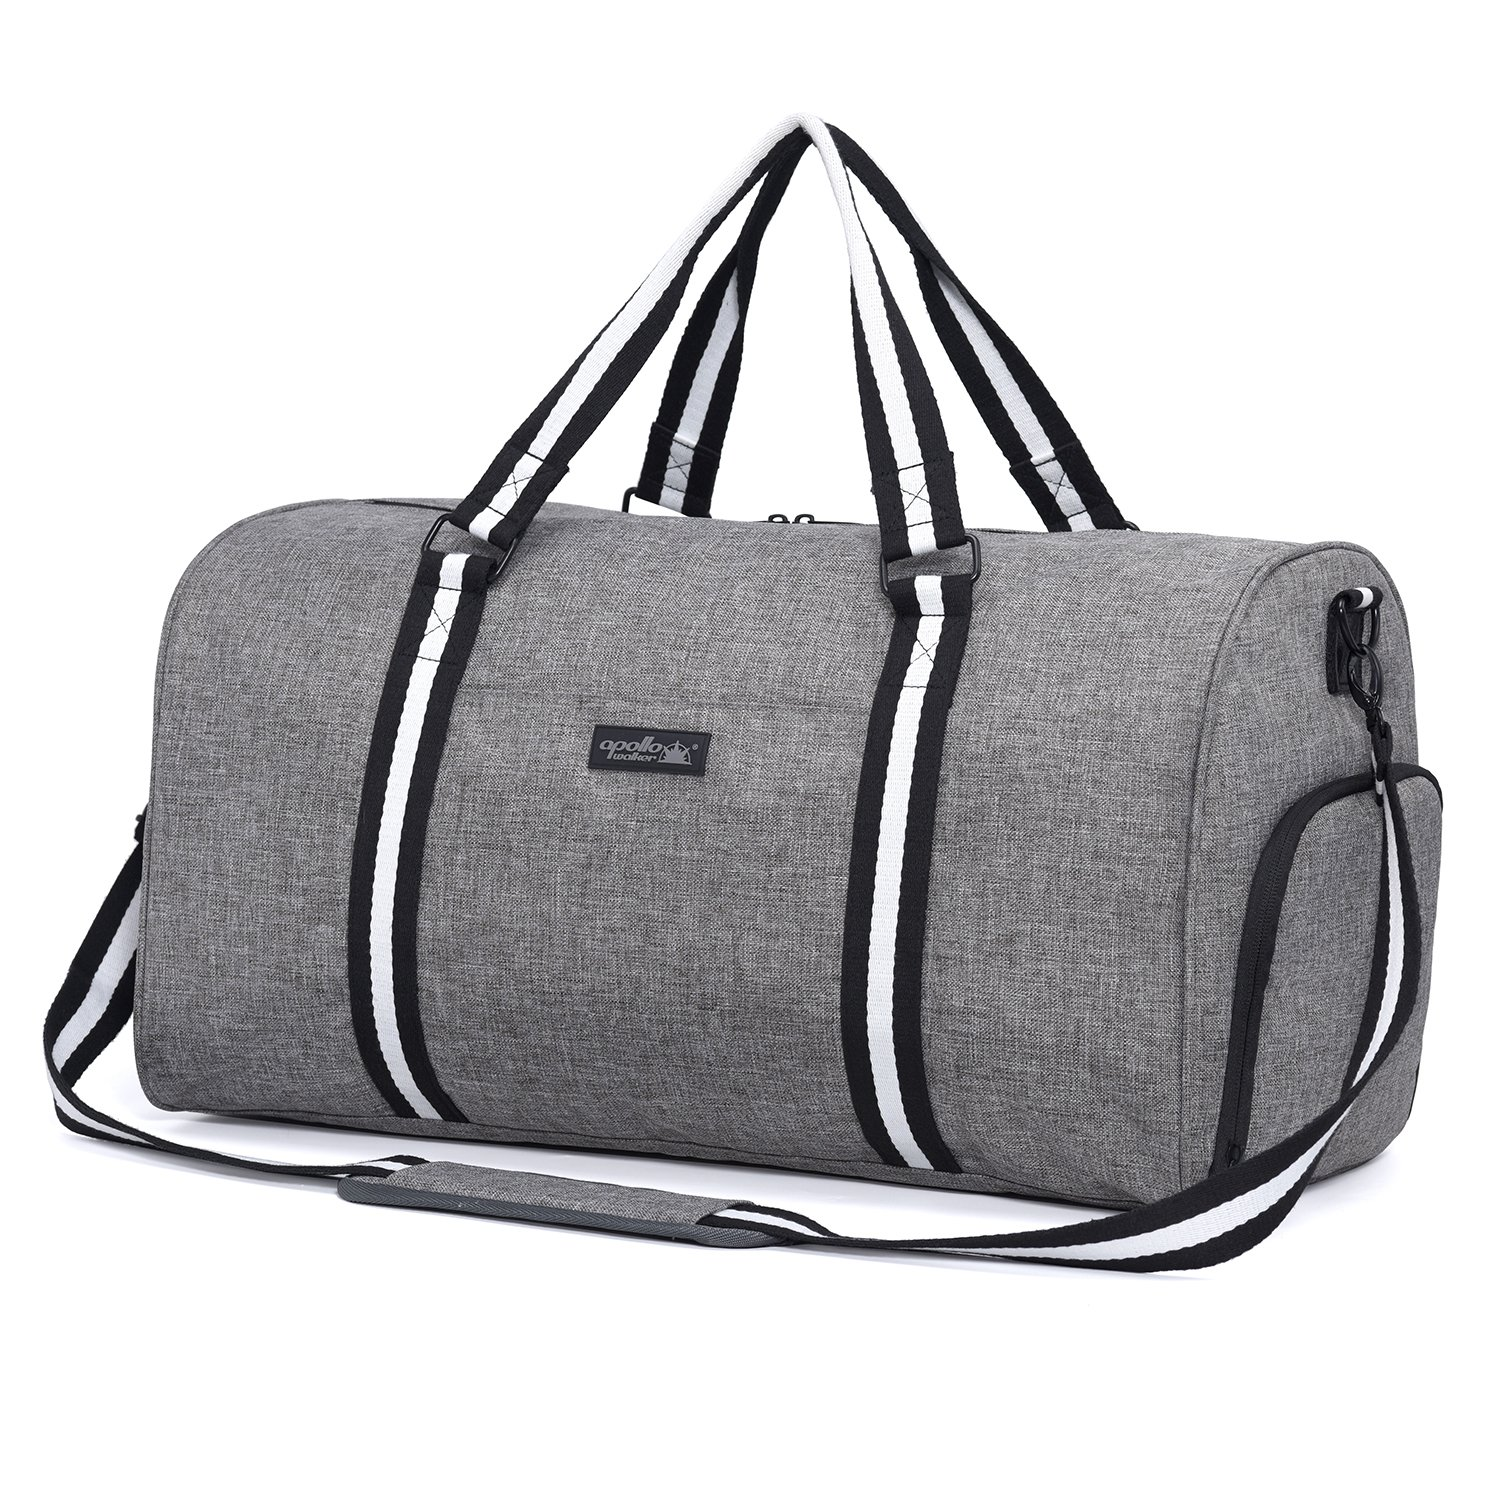 Apollowalker Water Resistant Sports Gym Travel Weekender Duffel Bag with Shoe Compartment Grey